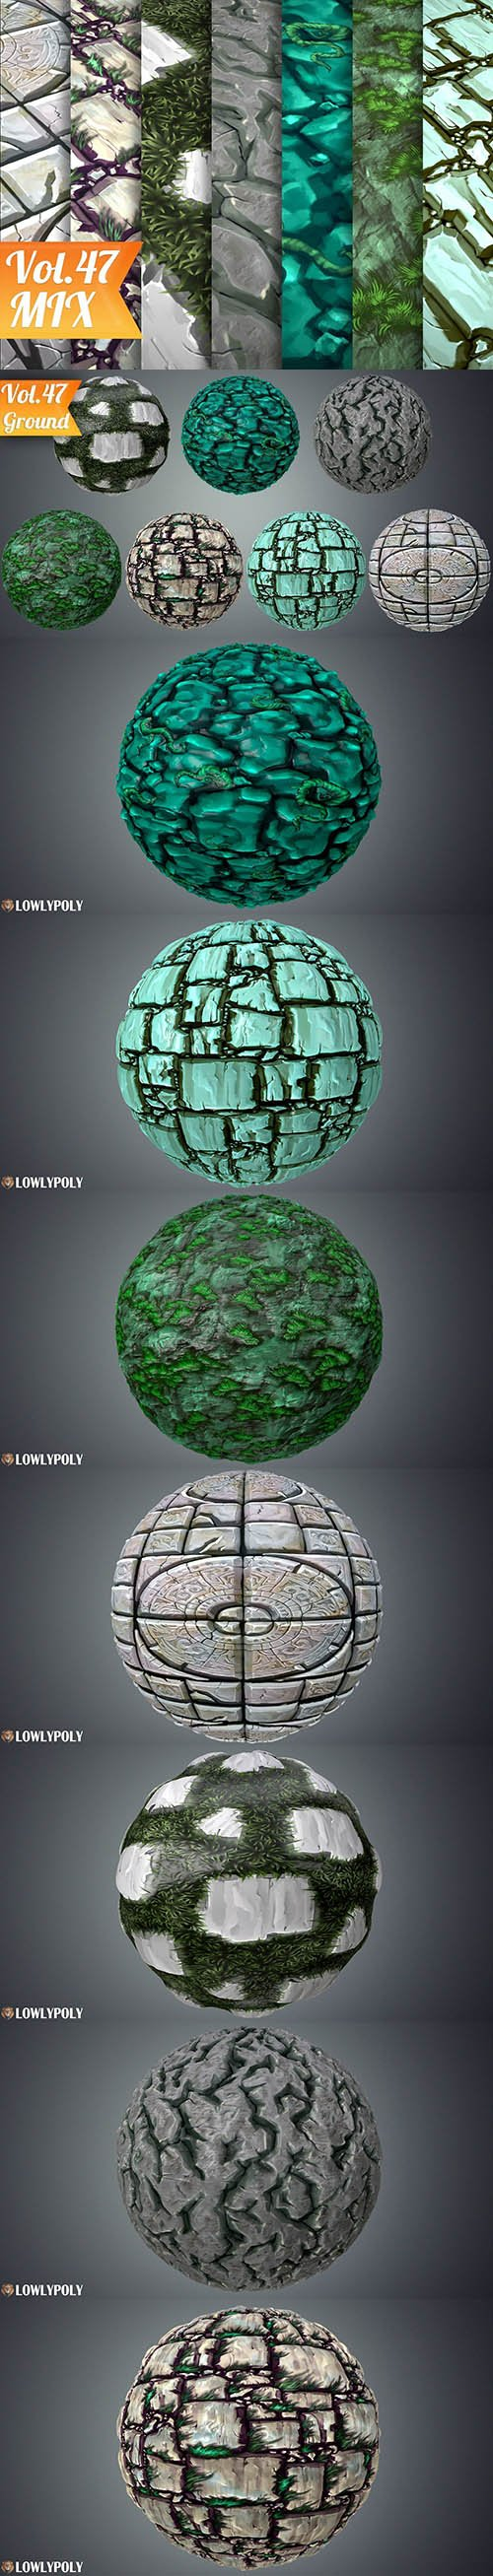 Stylized Ground Vol 47 - Hand Painted Texture Pack Texture